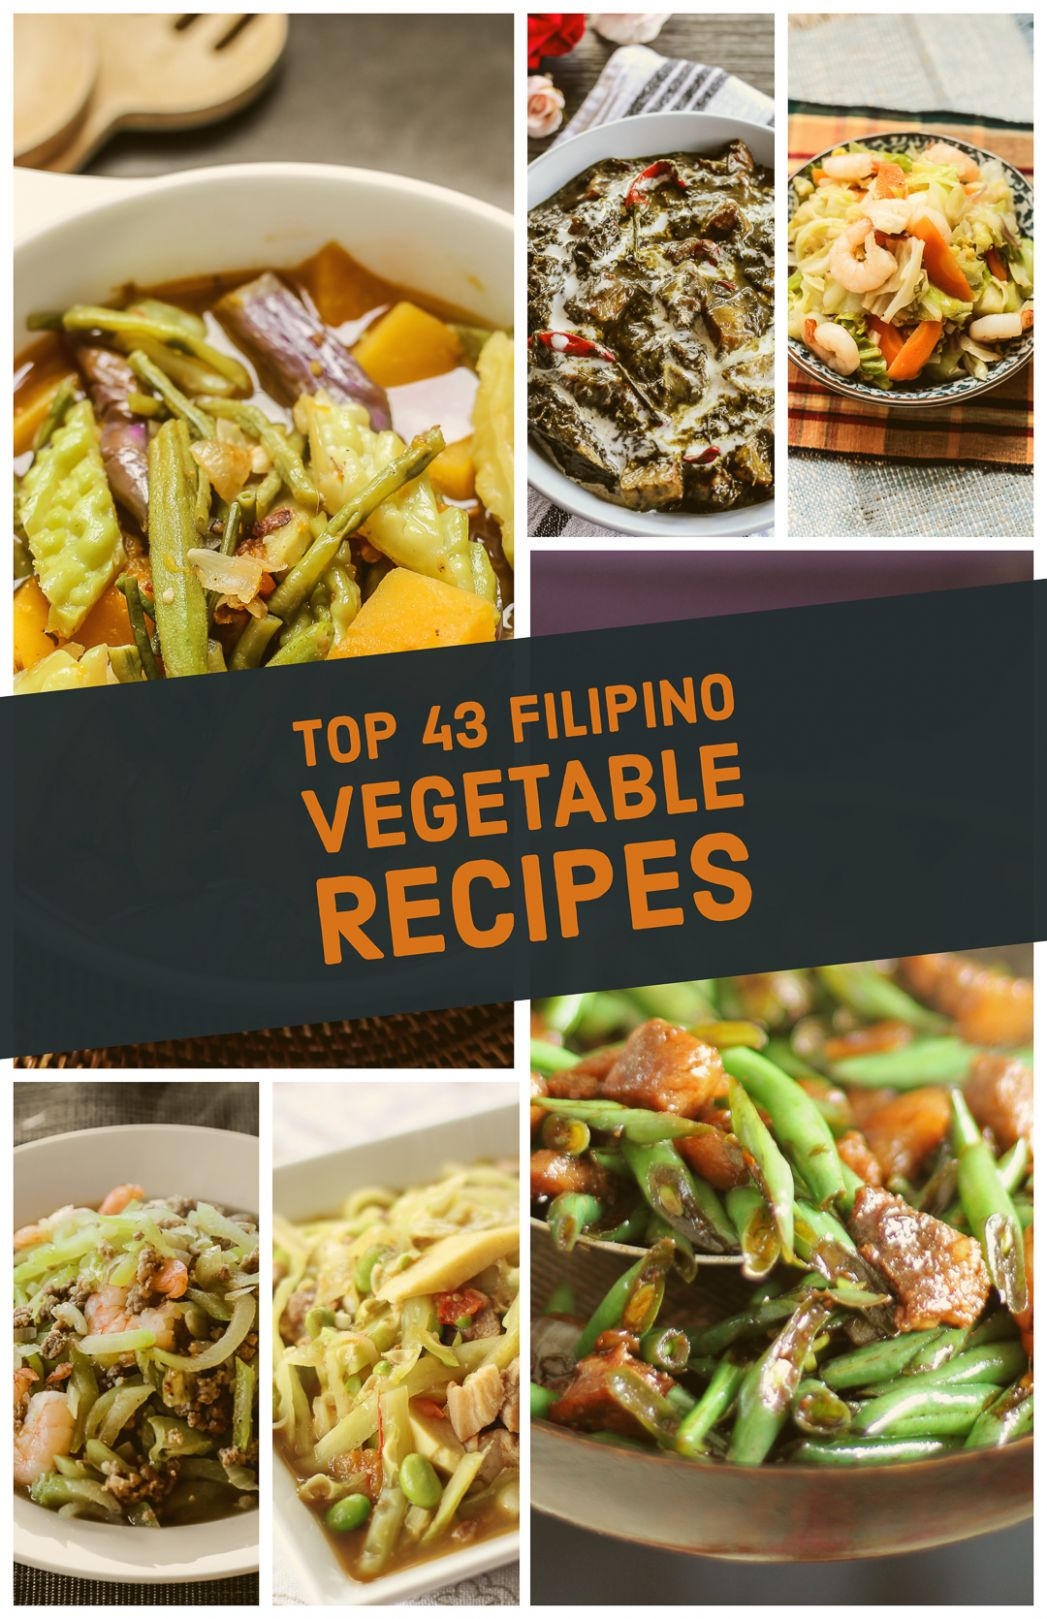 Top 11 Filipino Vegetable Recipes - Ang Sarap - Vegetable Recipes In The Philippines